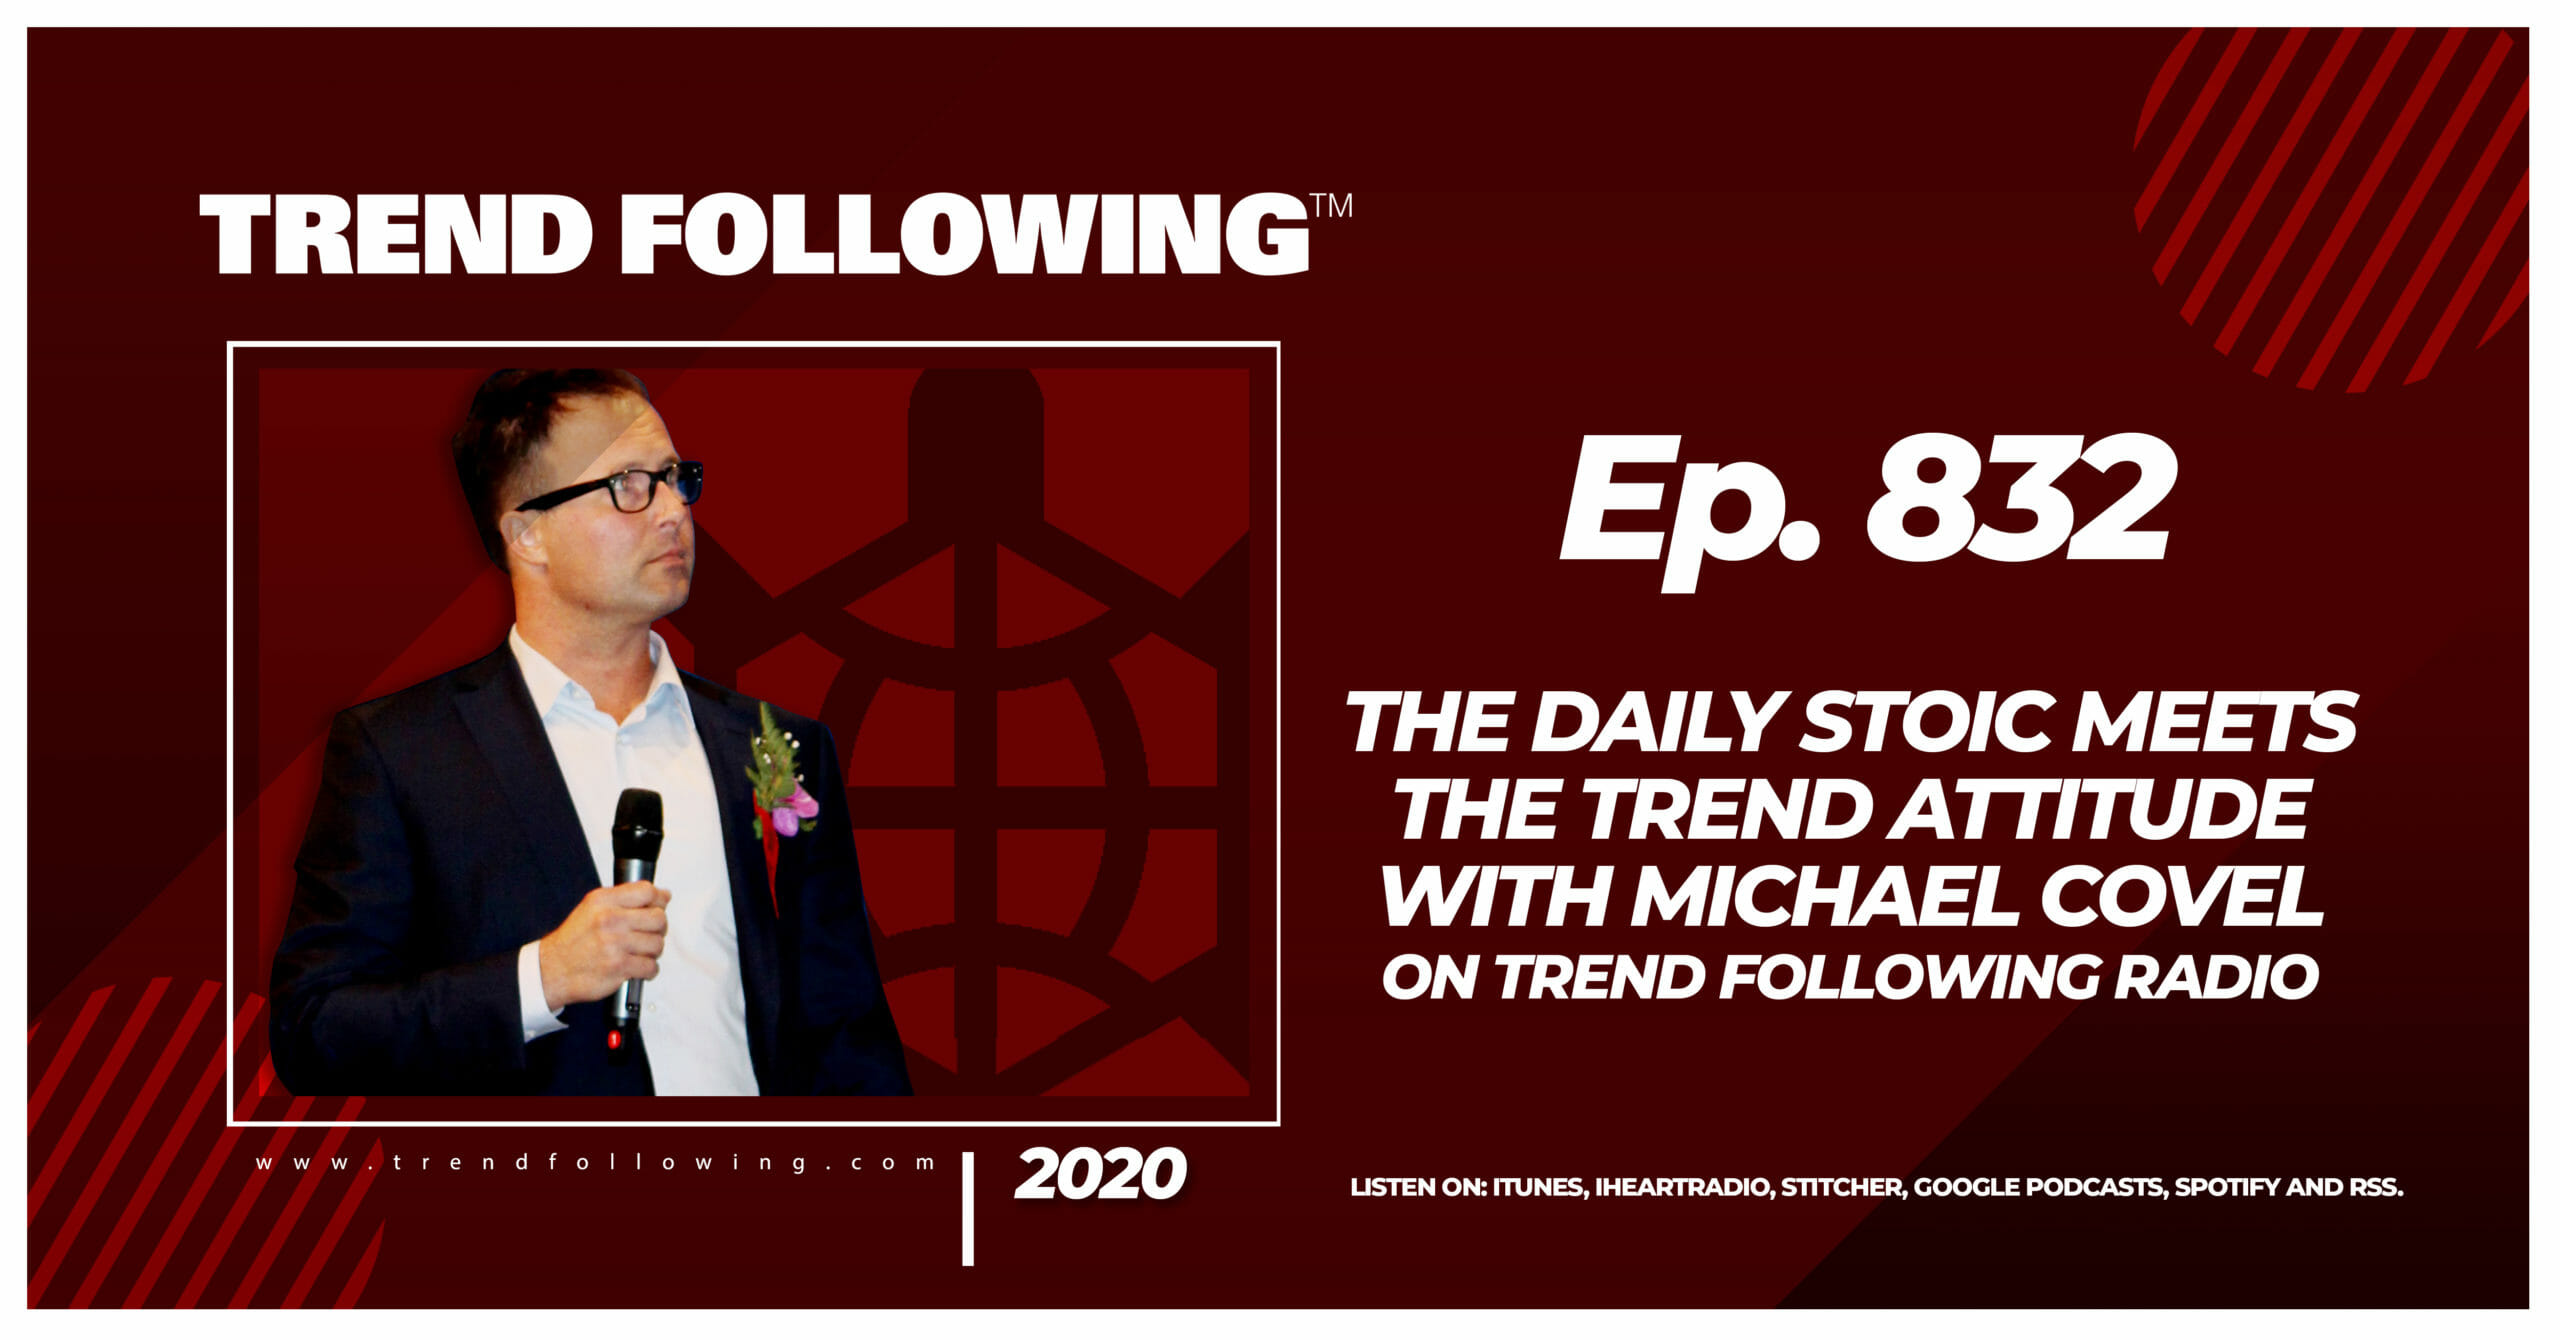 Episode 832 The Daily Stoic Meets The Trend Attitude with Michael Covel